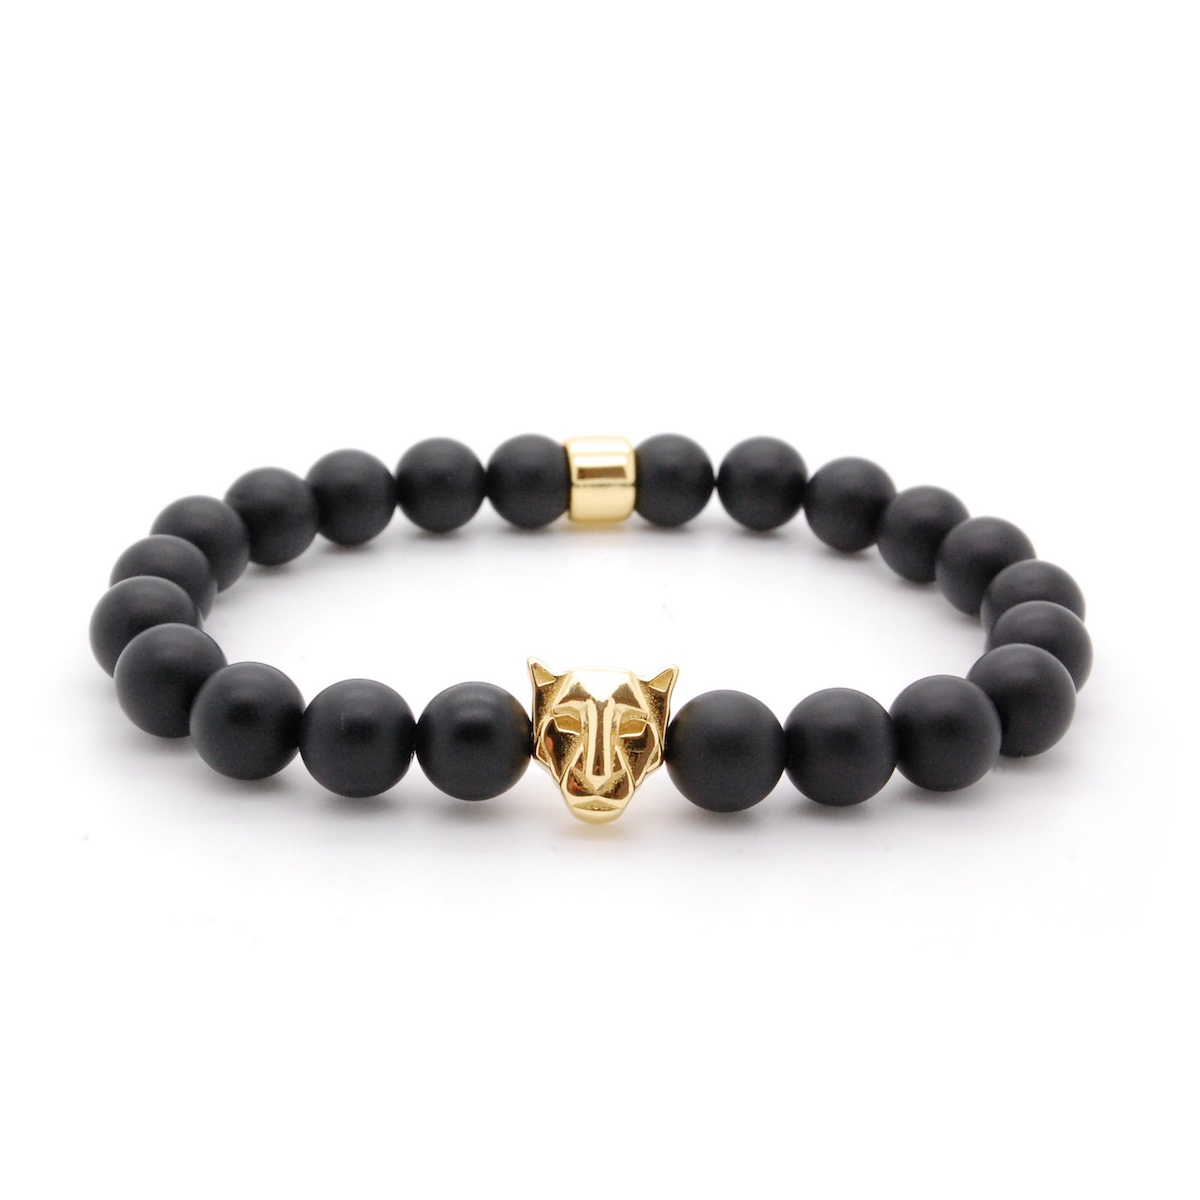 s real stretch products bracelets wrist bracelet black energy beaded obsidian panther golden men mm stone natural